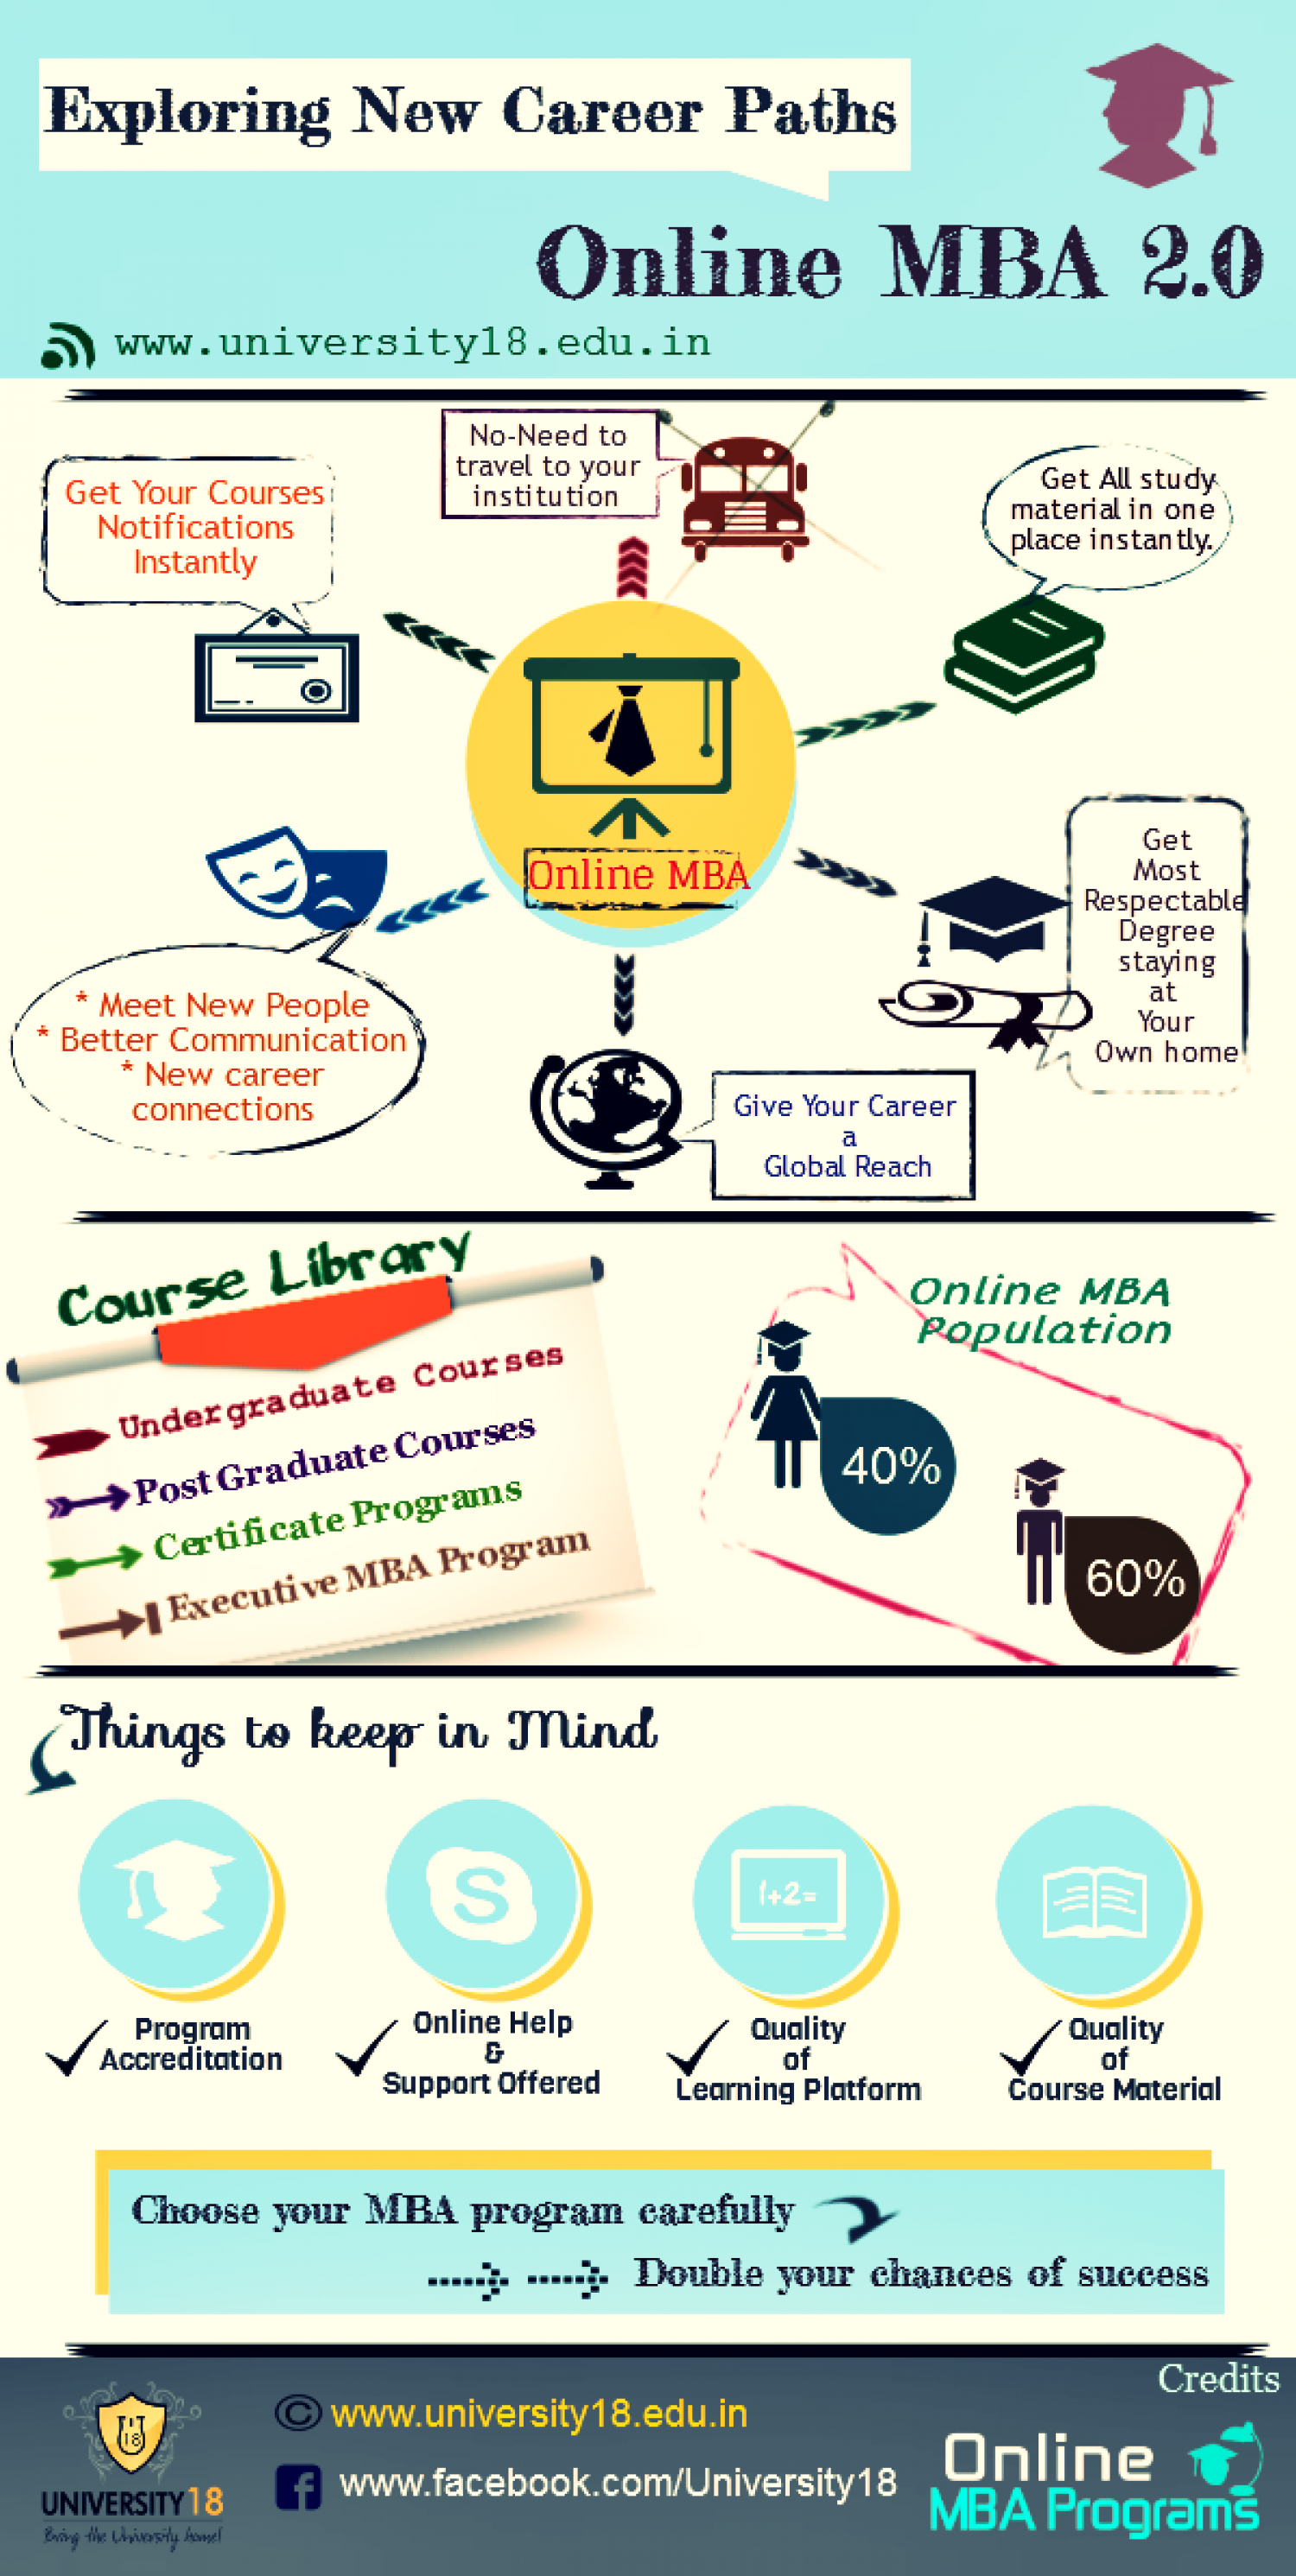 Online MBA Courses - Exploring Career Paths Infographic